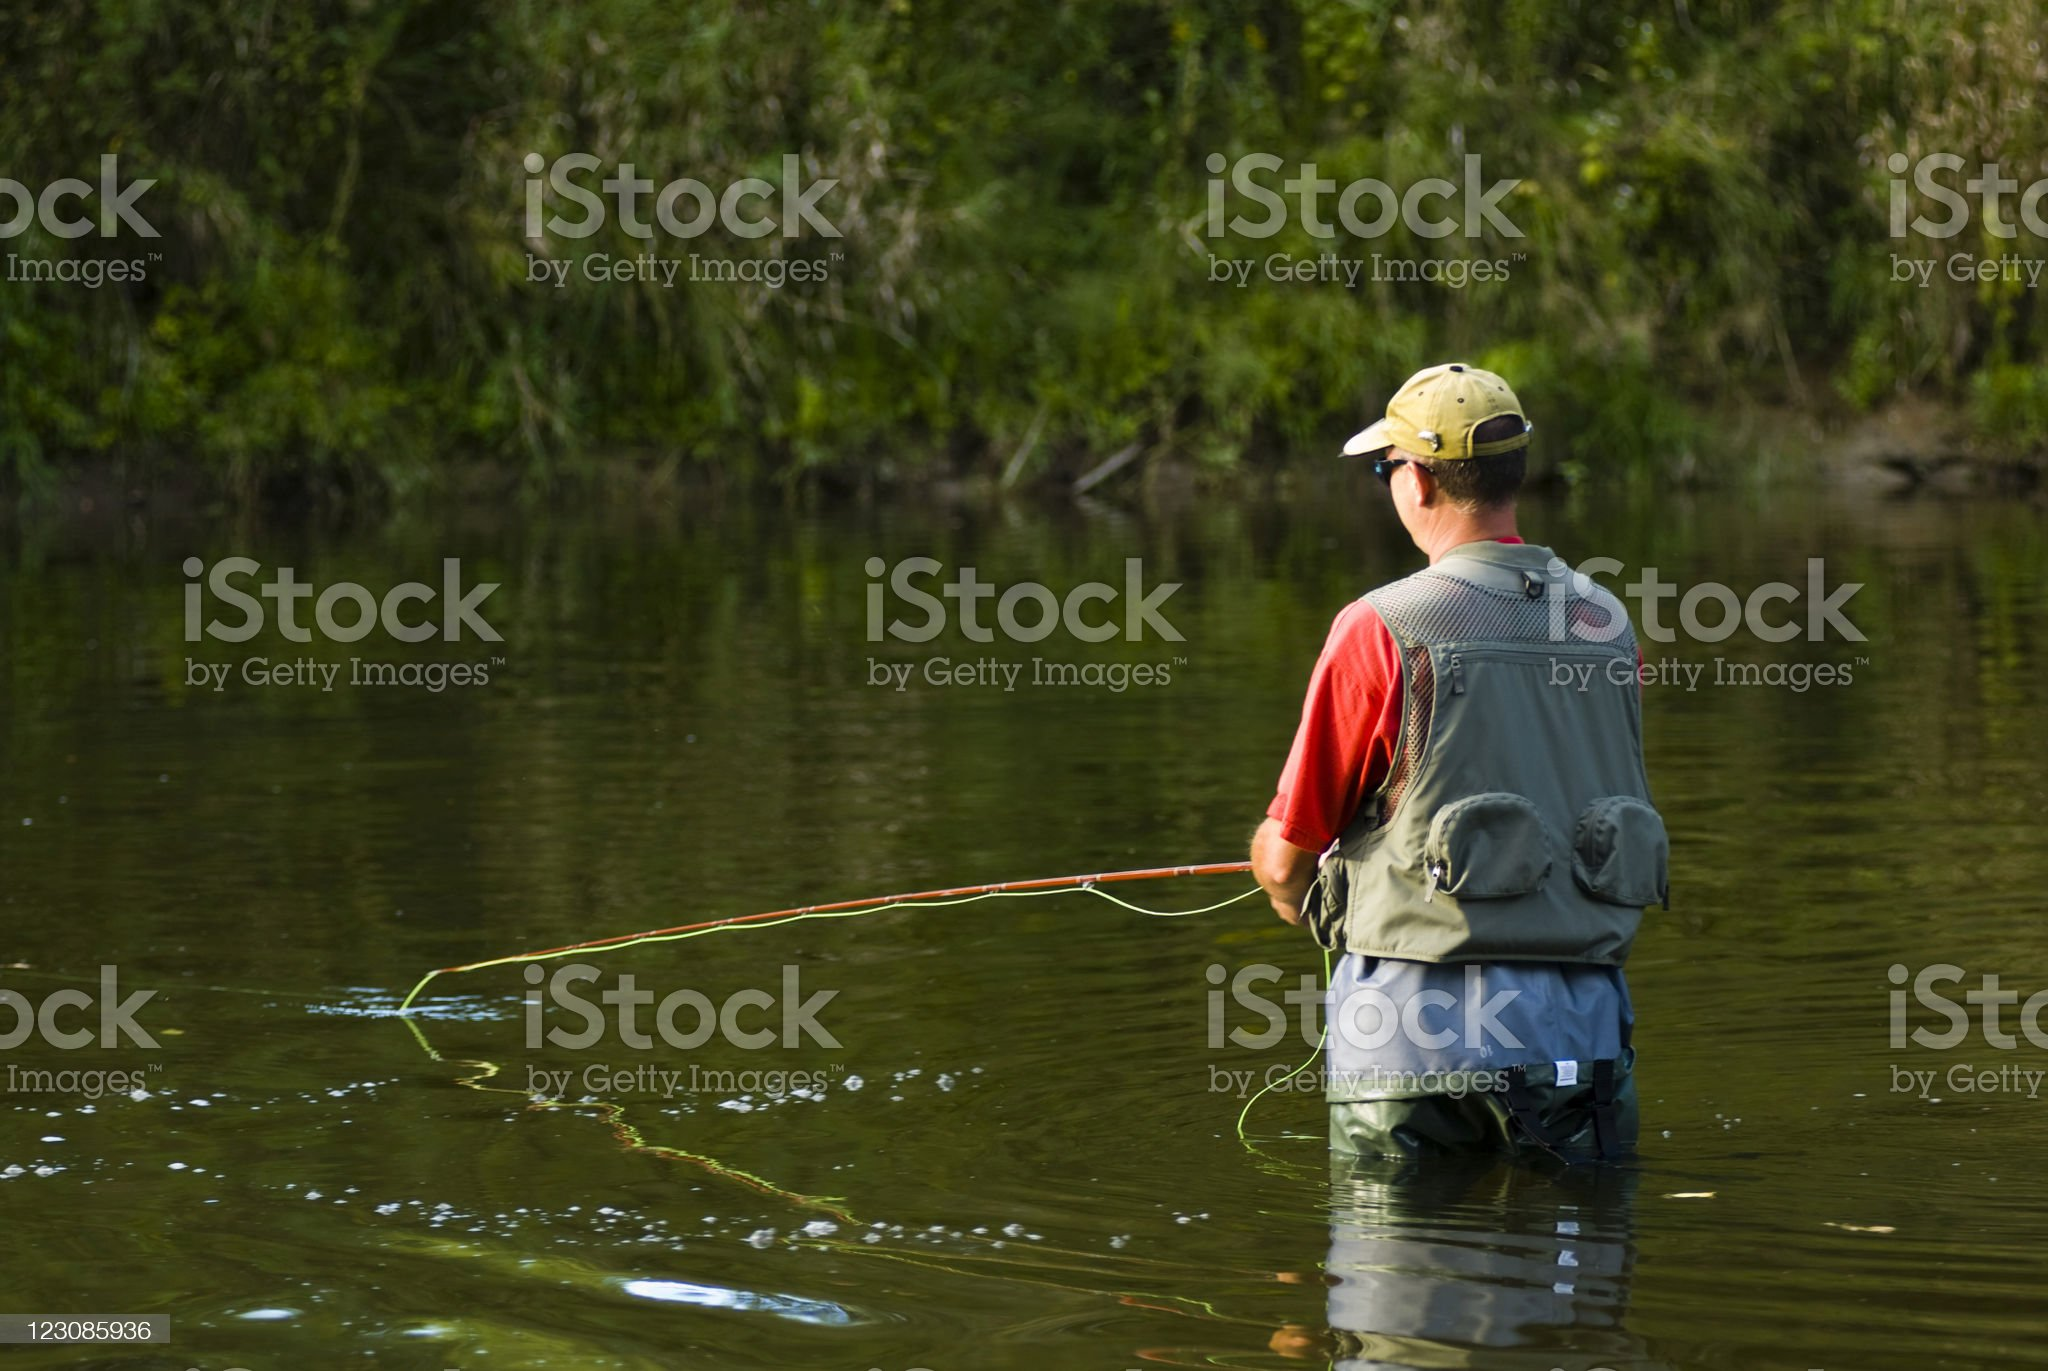 River Fly Fishing royalty-free stock photo